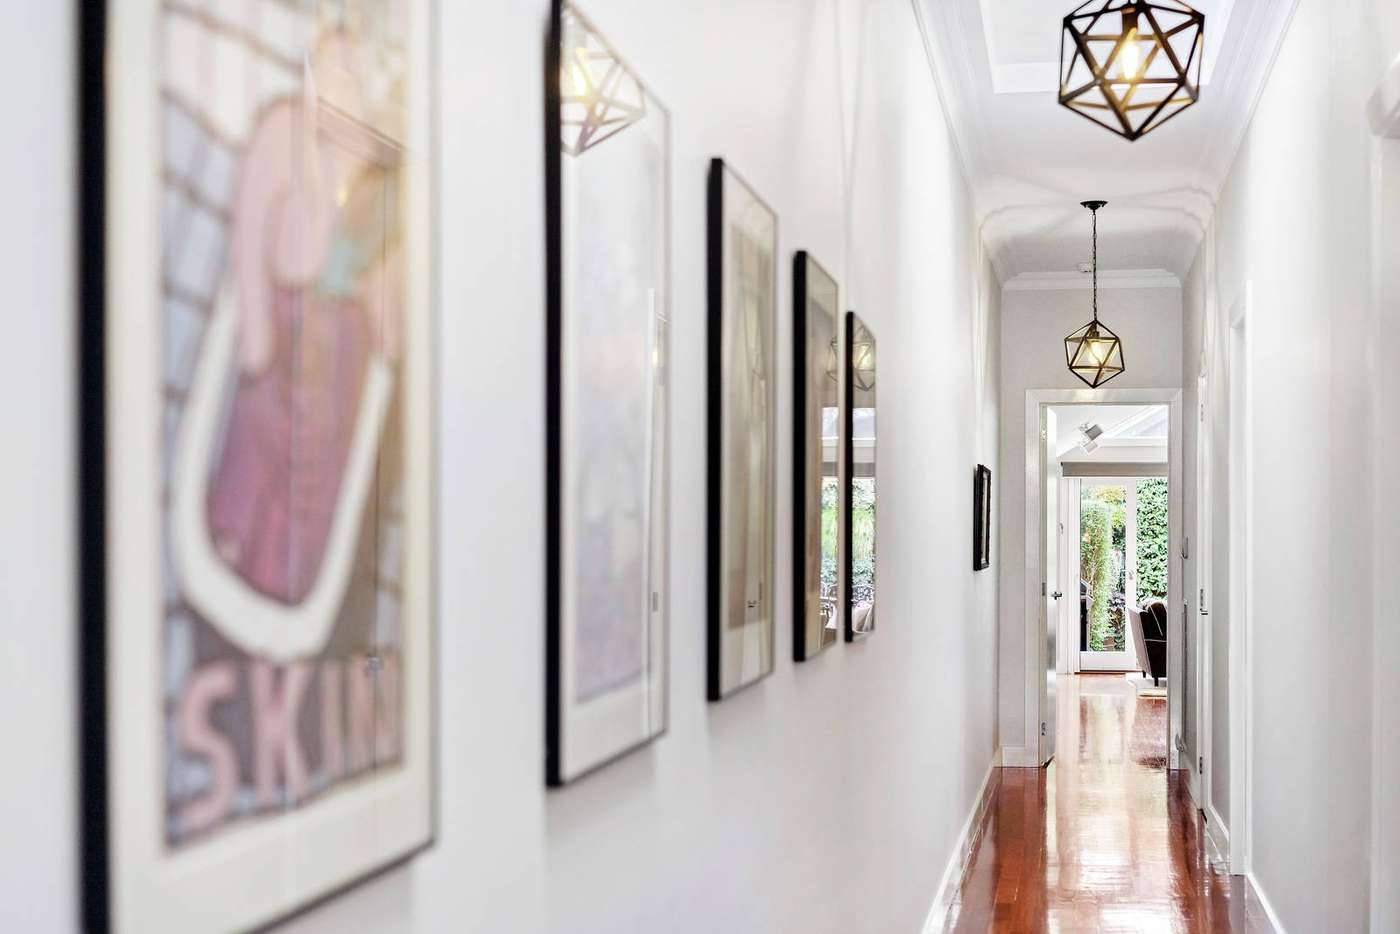 Sixth view of Homely house listing, 69 Ruskin Street, Elwood VIC 3184